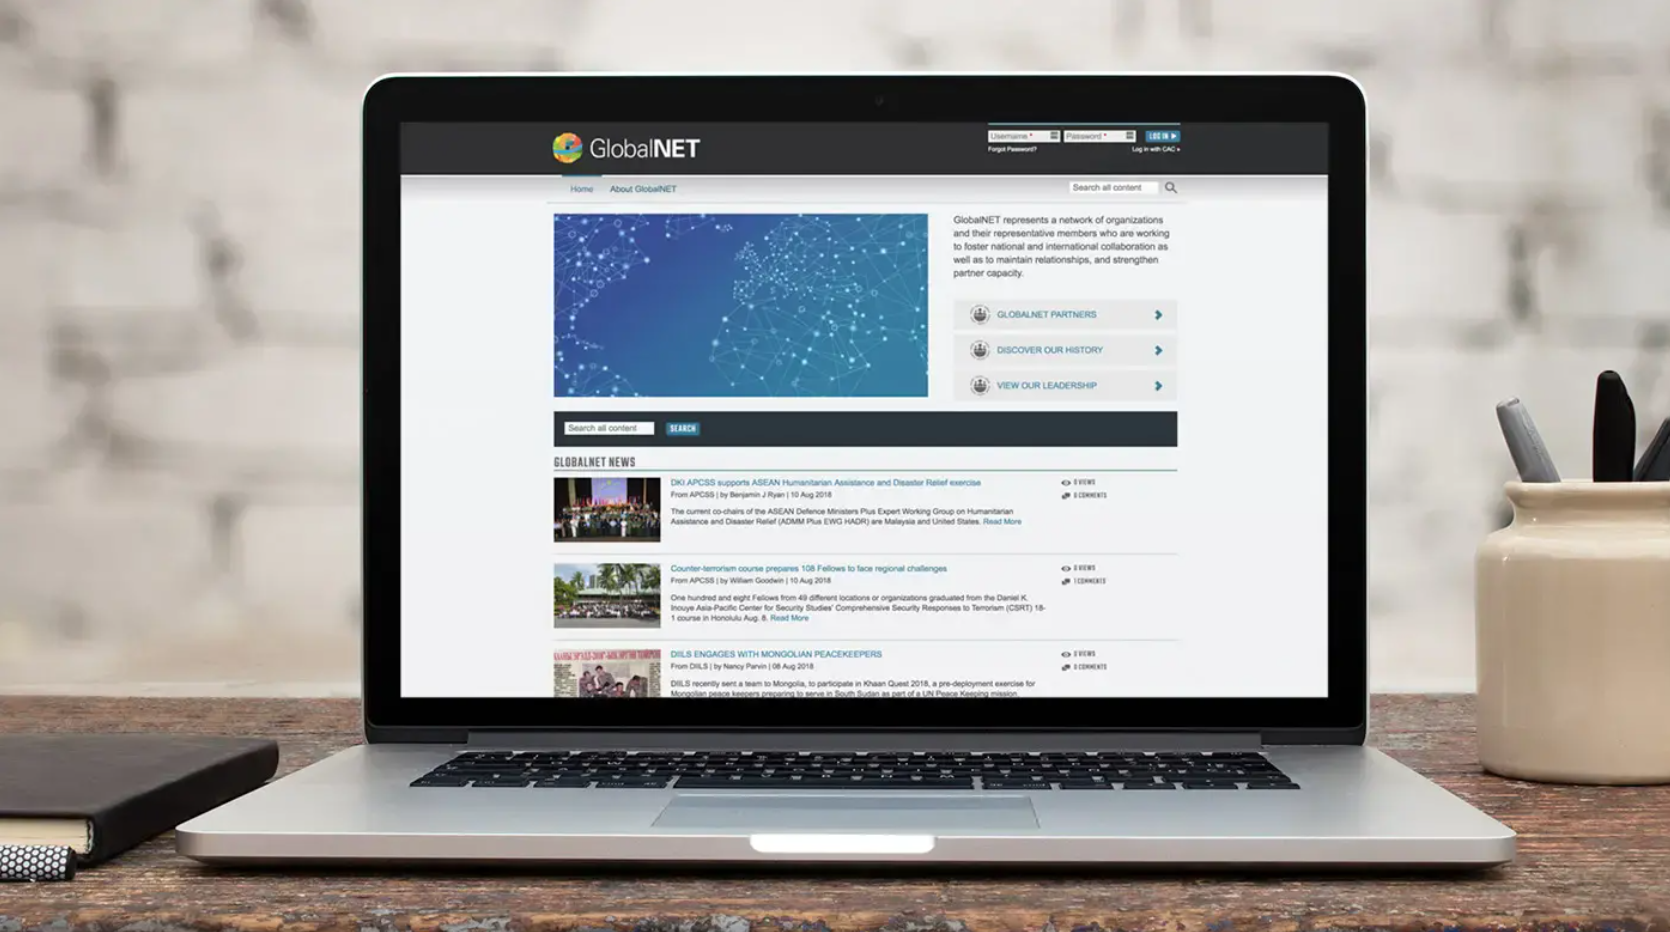 The homepage of the GlobalNET platform, displayed on a laptop